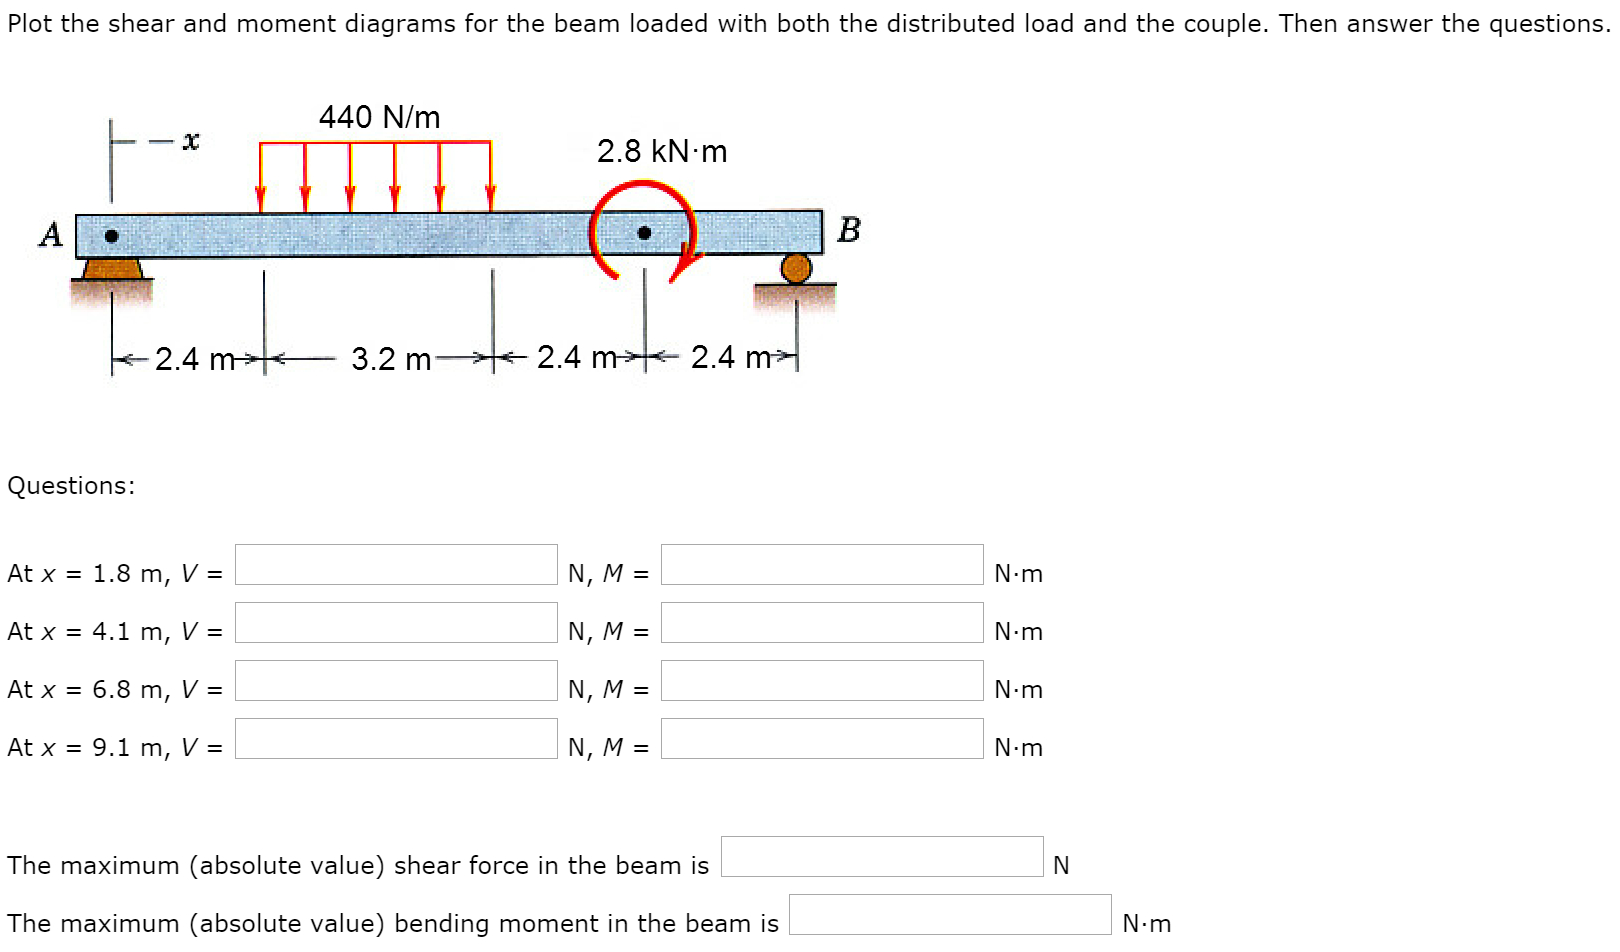 Shear And Moment Diagrams Solved Plot The Shear And Moment Diagrams For The Beam Lo